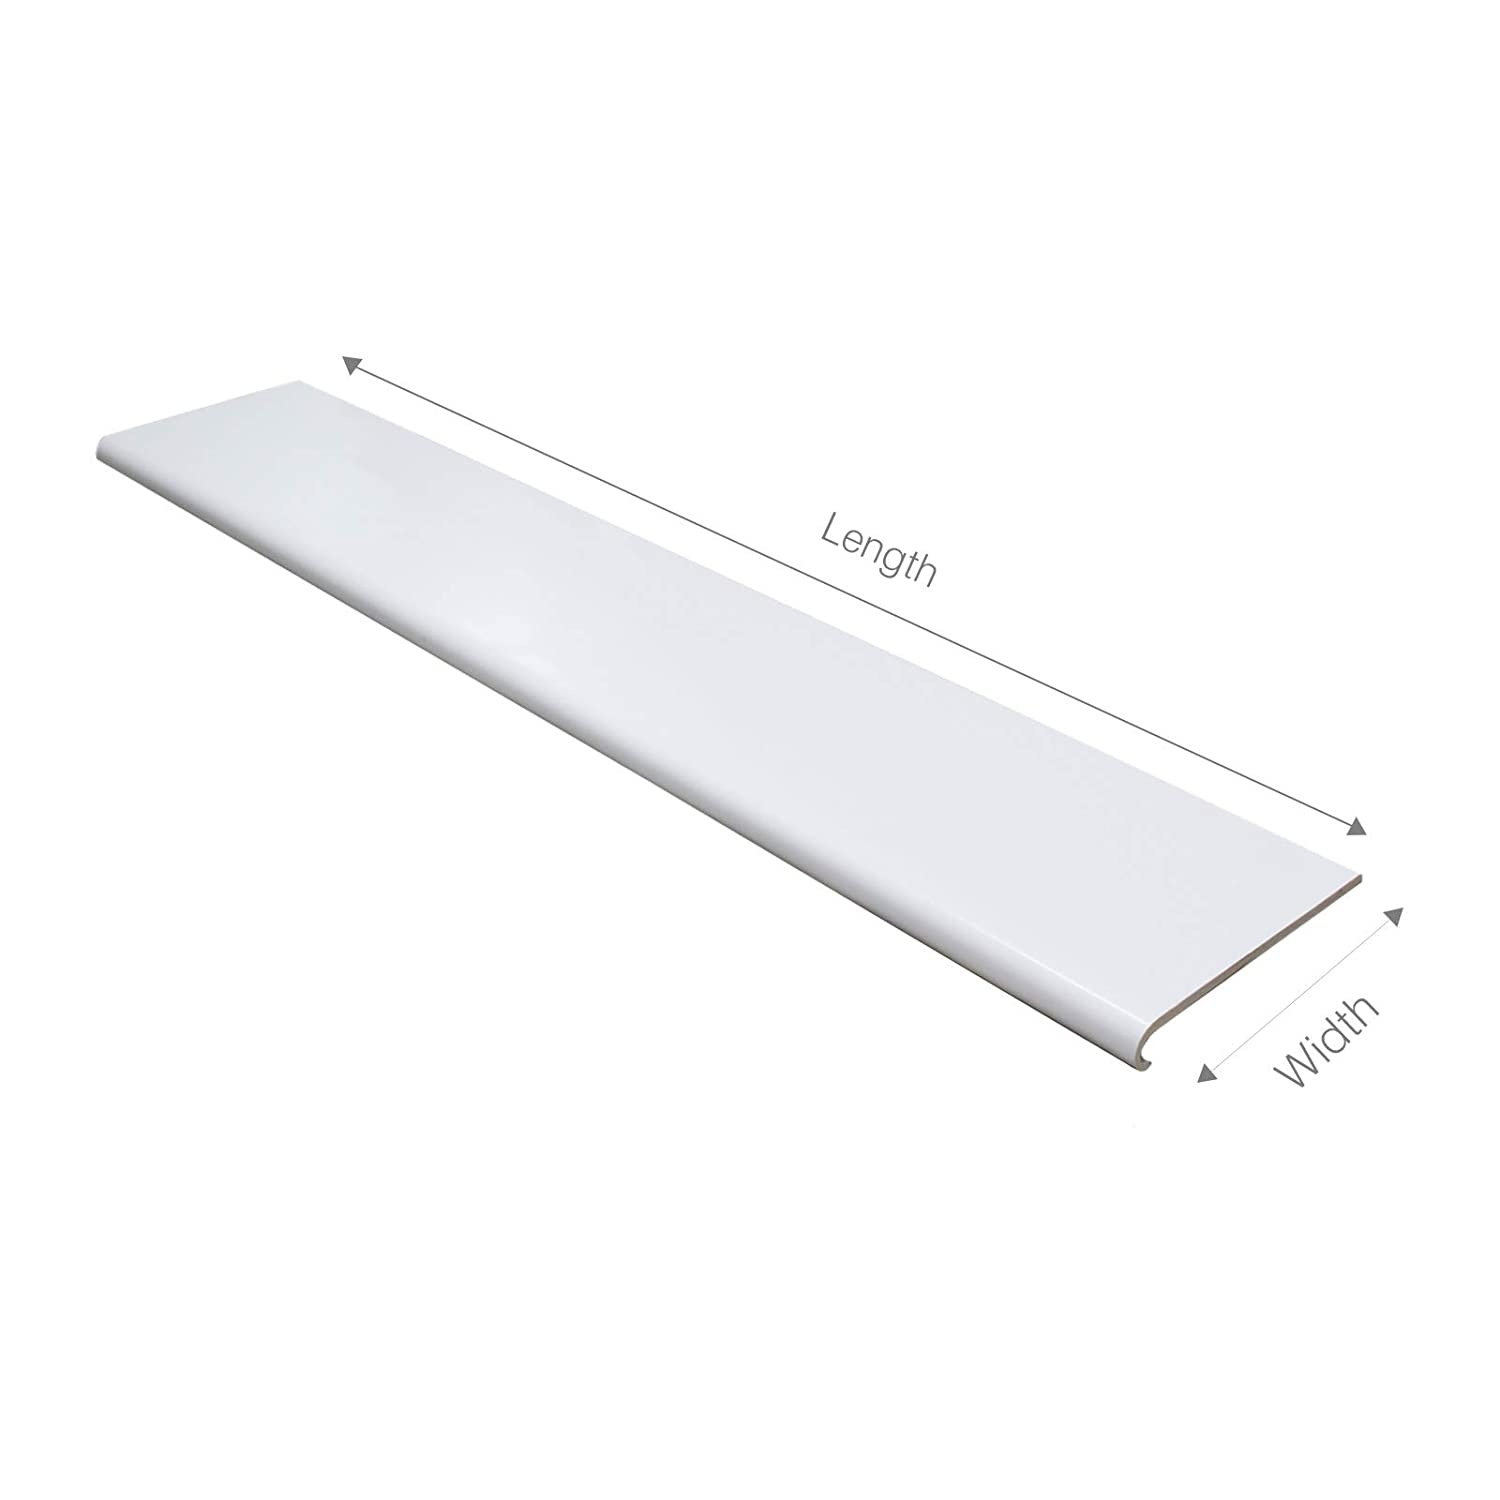 260mm White UPVC Bullnose Window Board//Cill Cover 2.5m Long 9mm Thick Plastic Window Sill Capping